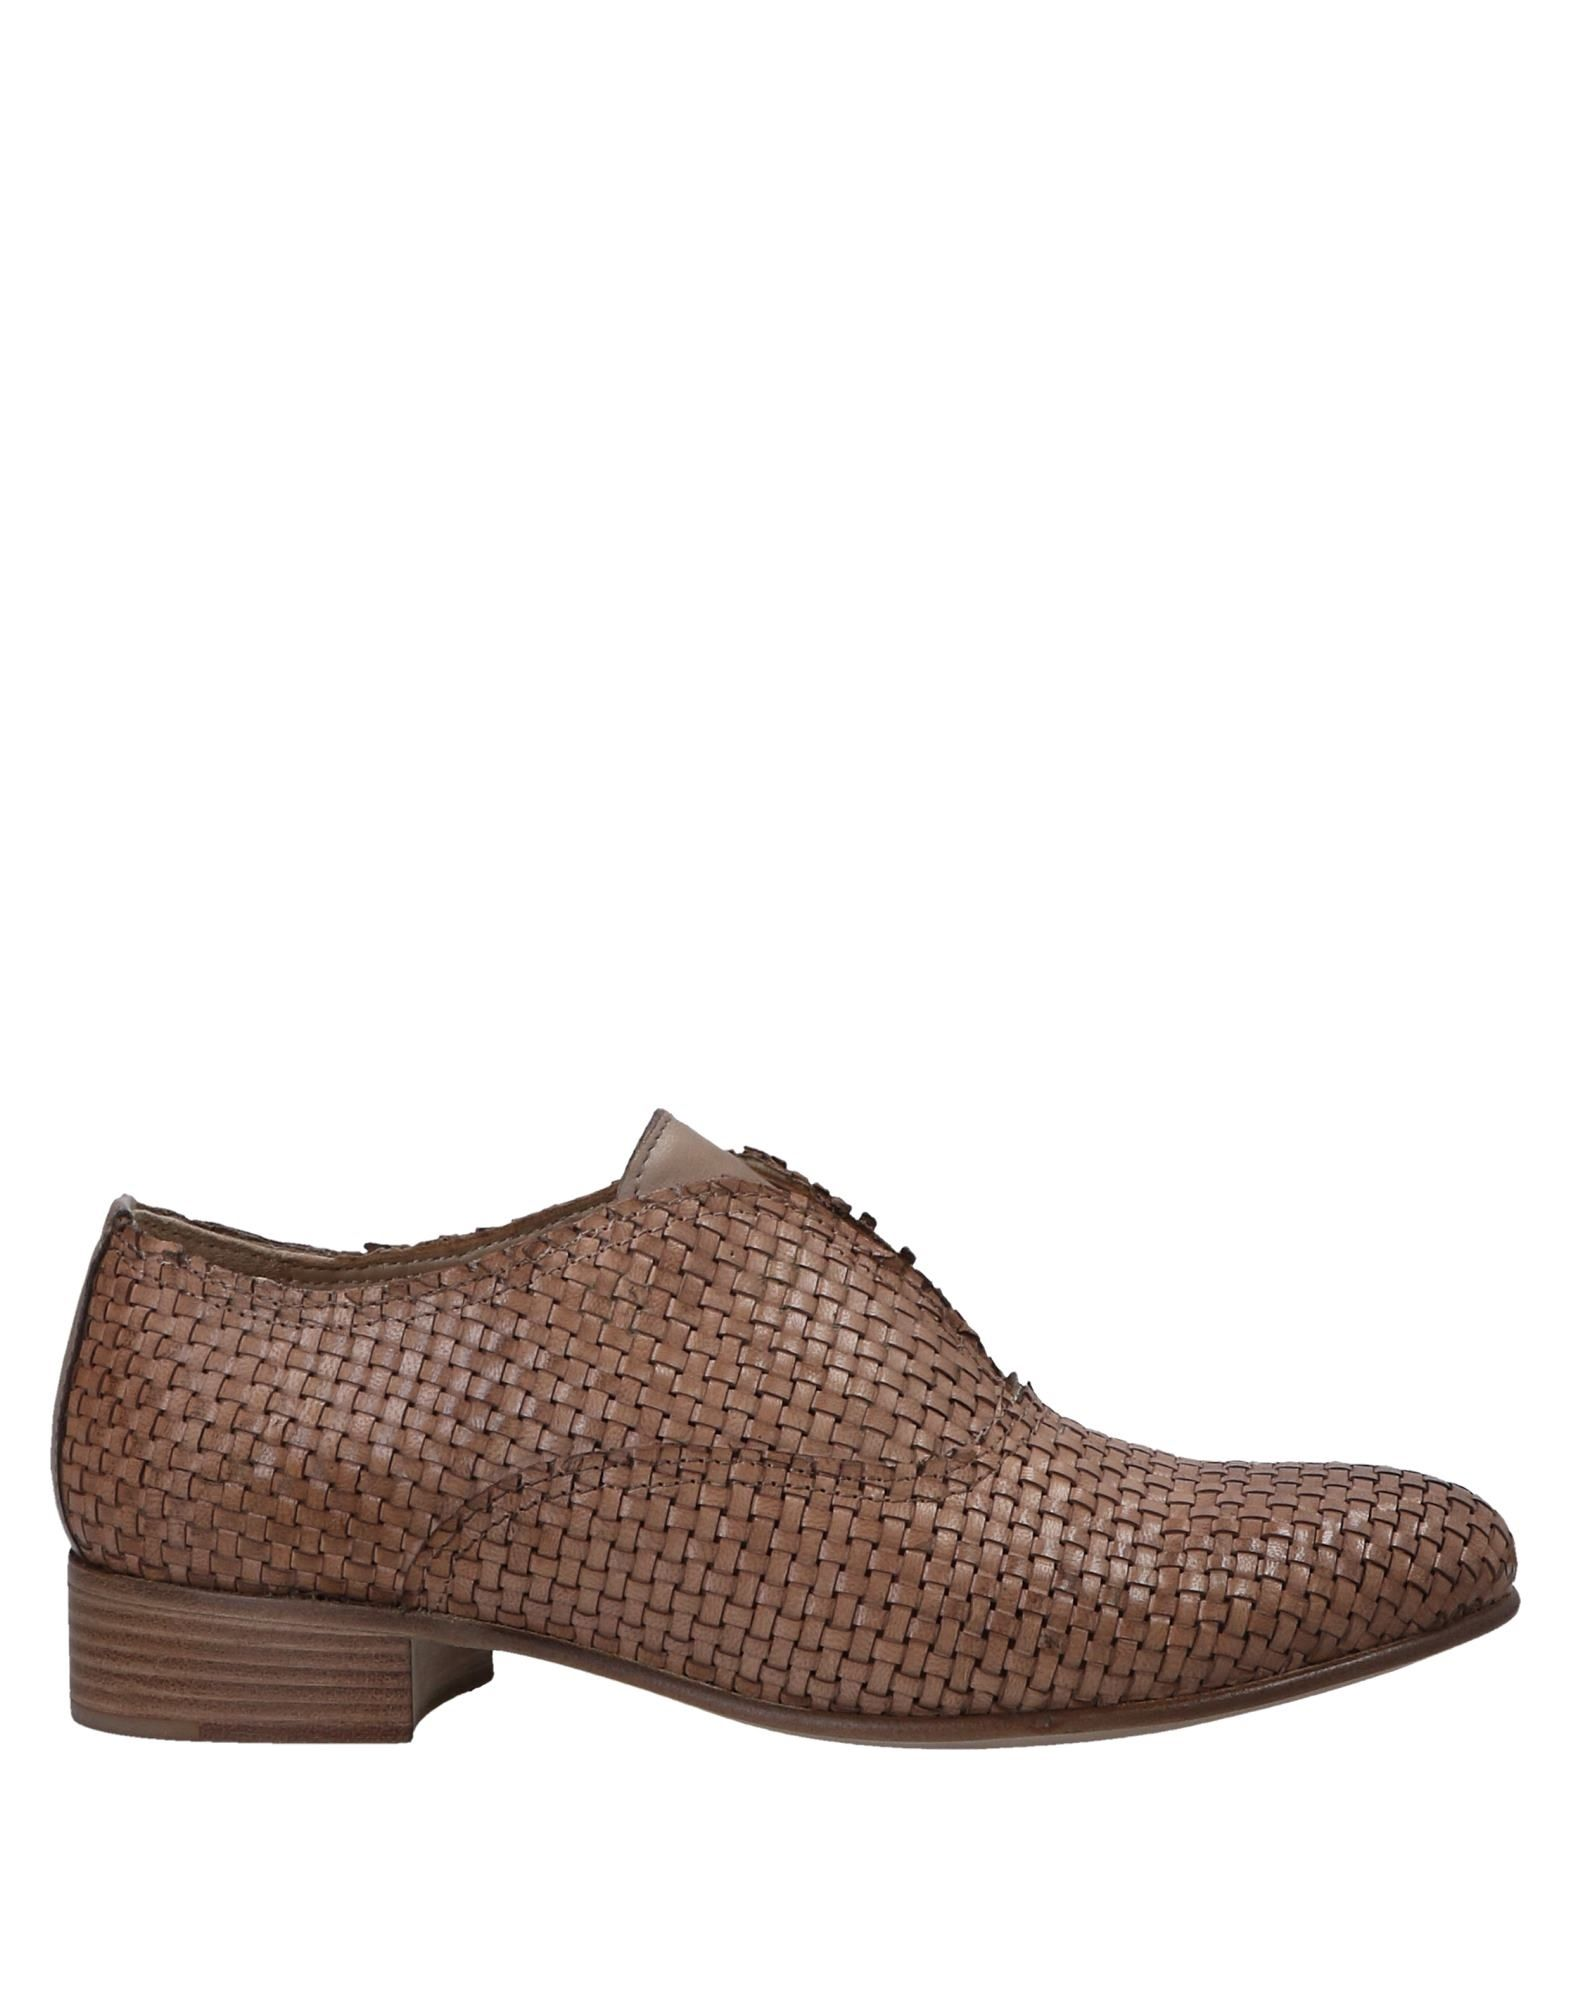 Calpierre Loafers - Women Women Women Calpierre Loafers online on  United Kingdom - 11551394OR 1a1437